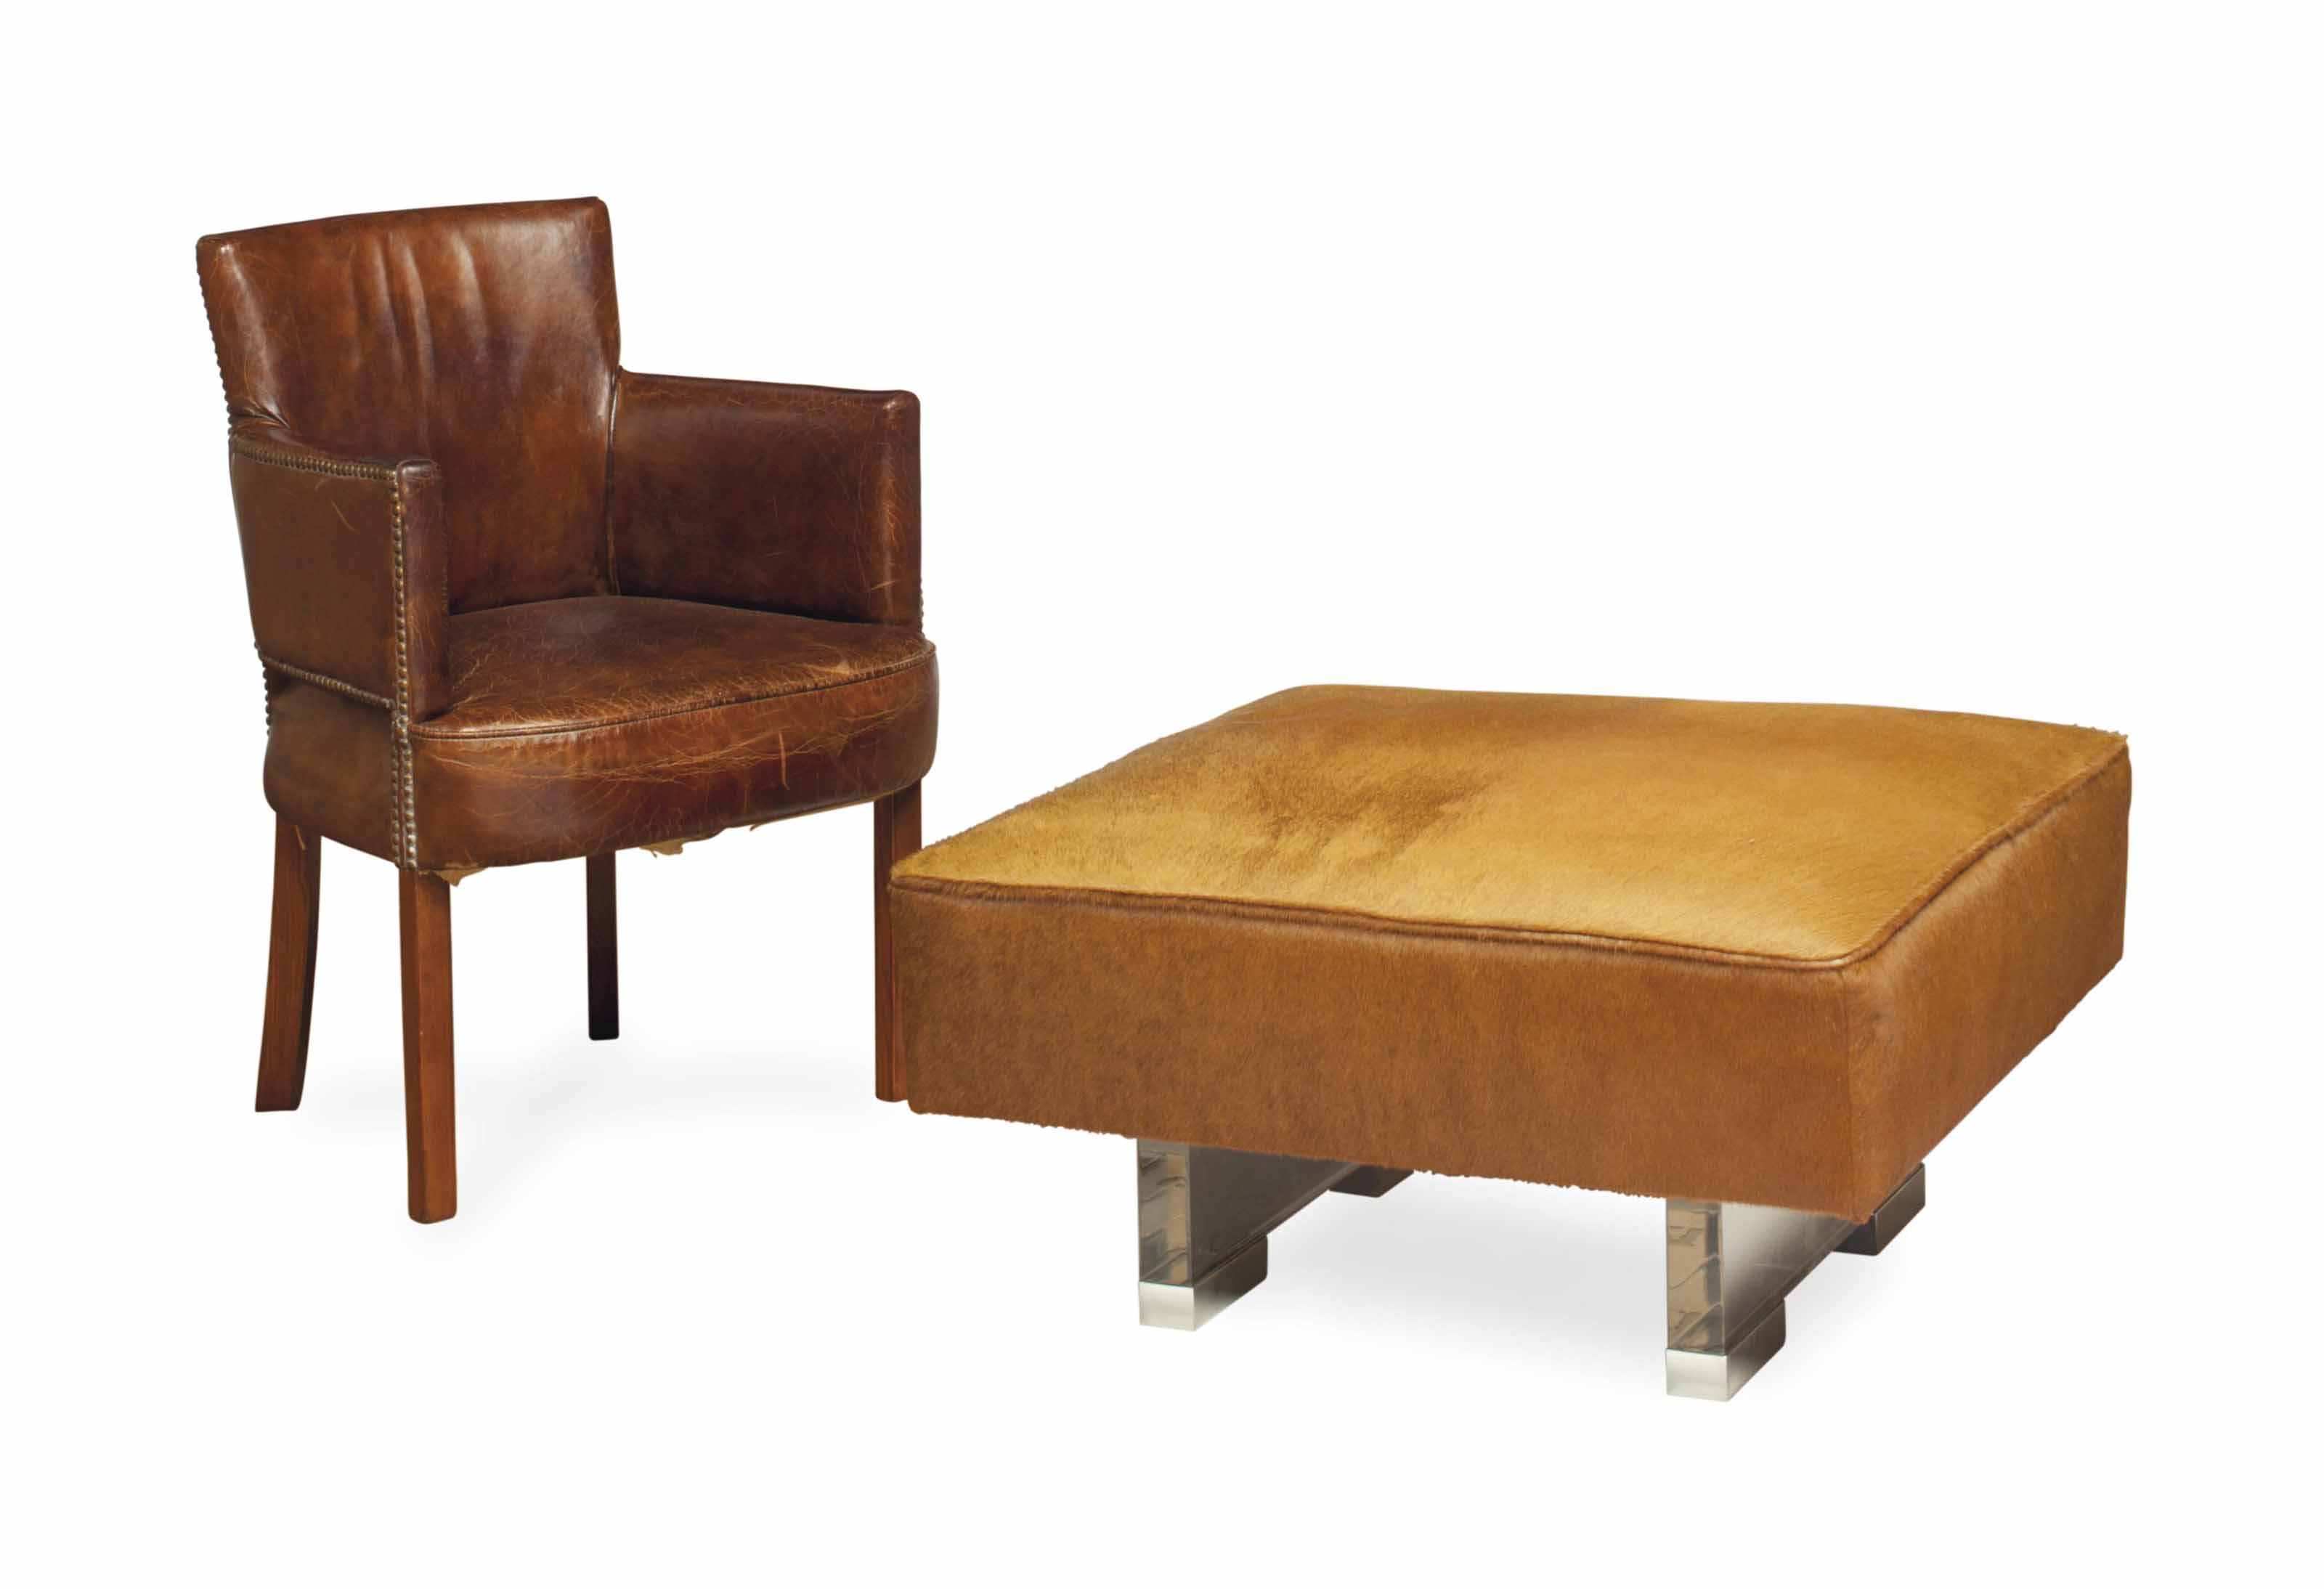 A PAIR OF PONYSKIN, CHROMED-METAL AND PLEXIGLAS OTTOMANS, AND A PAIR OF OAK AND CLOSE-NAILED BROWN LEATHER ARMCHAIRS,